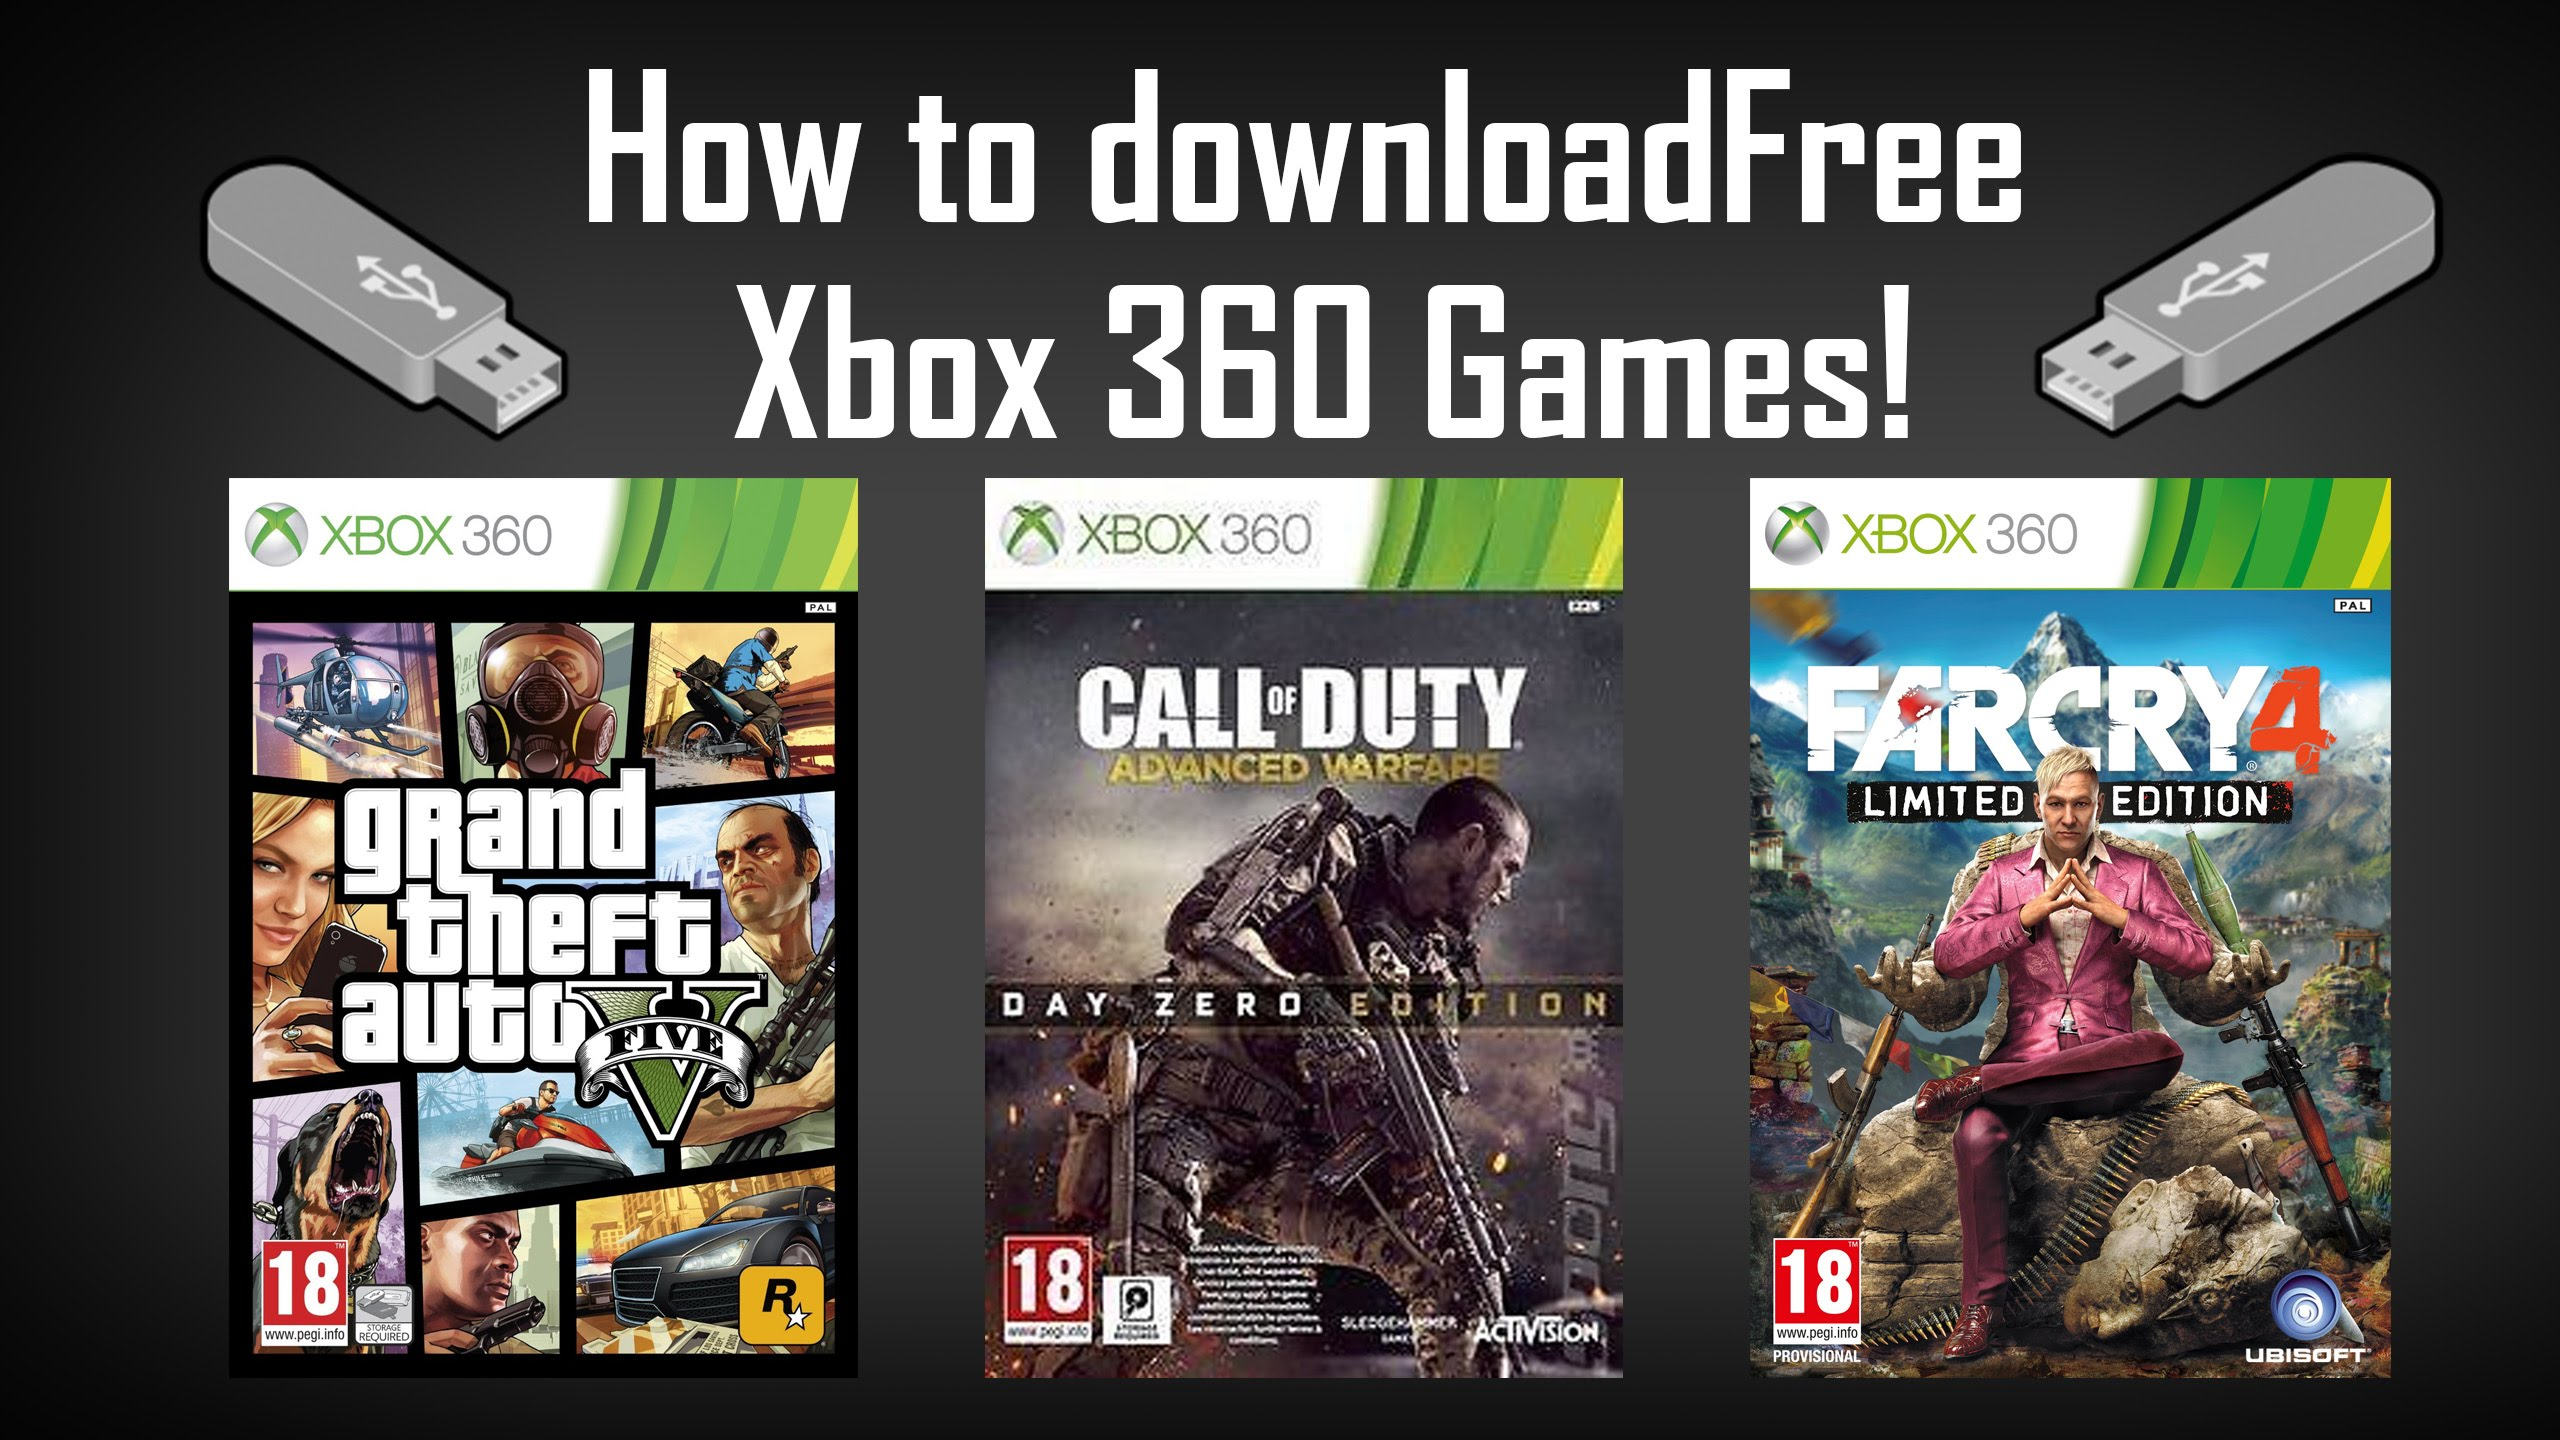 How to download Xbox 360 games for free on USB and play *June 2016* -  LatestGameVideos